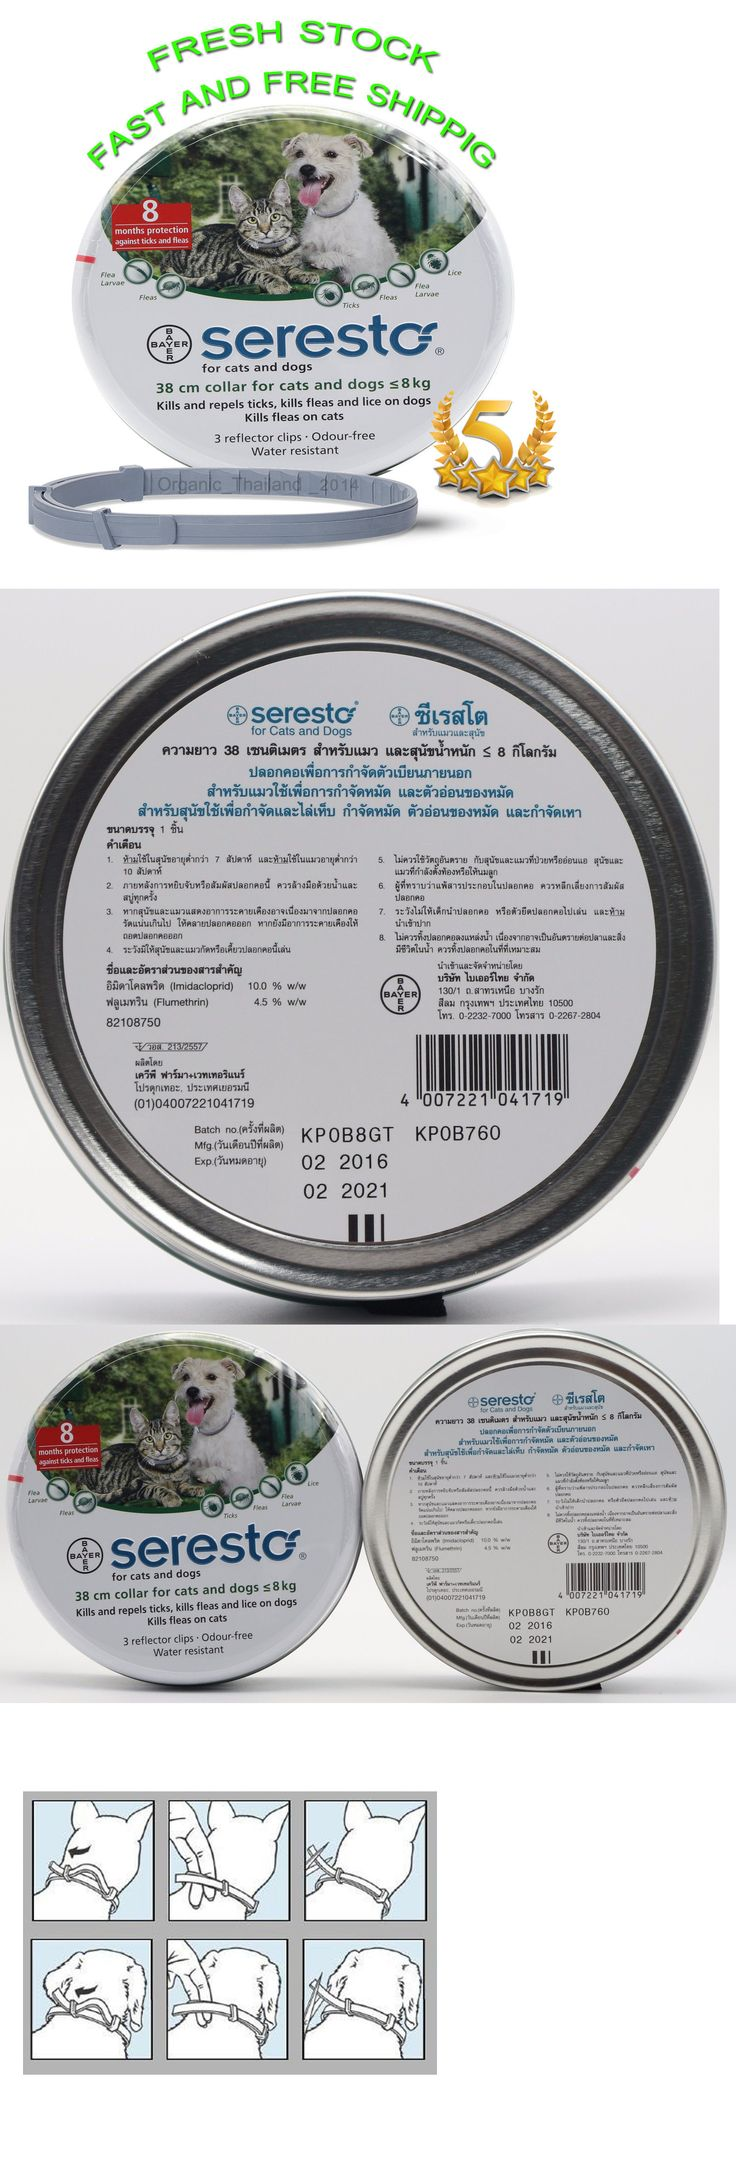 Collars and Tags 66763: Bayer Foresto Seresto Flea And Tick Collar For Small Dog And Cat Under 18Lbs 38Cm -> BUY IT NOW ONLY: $33.65 on eBay!